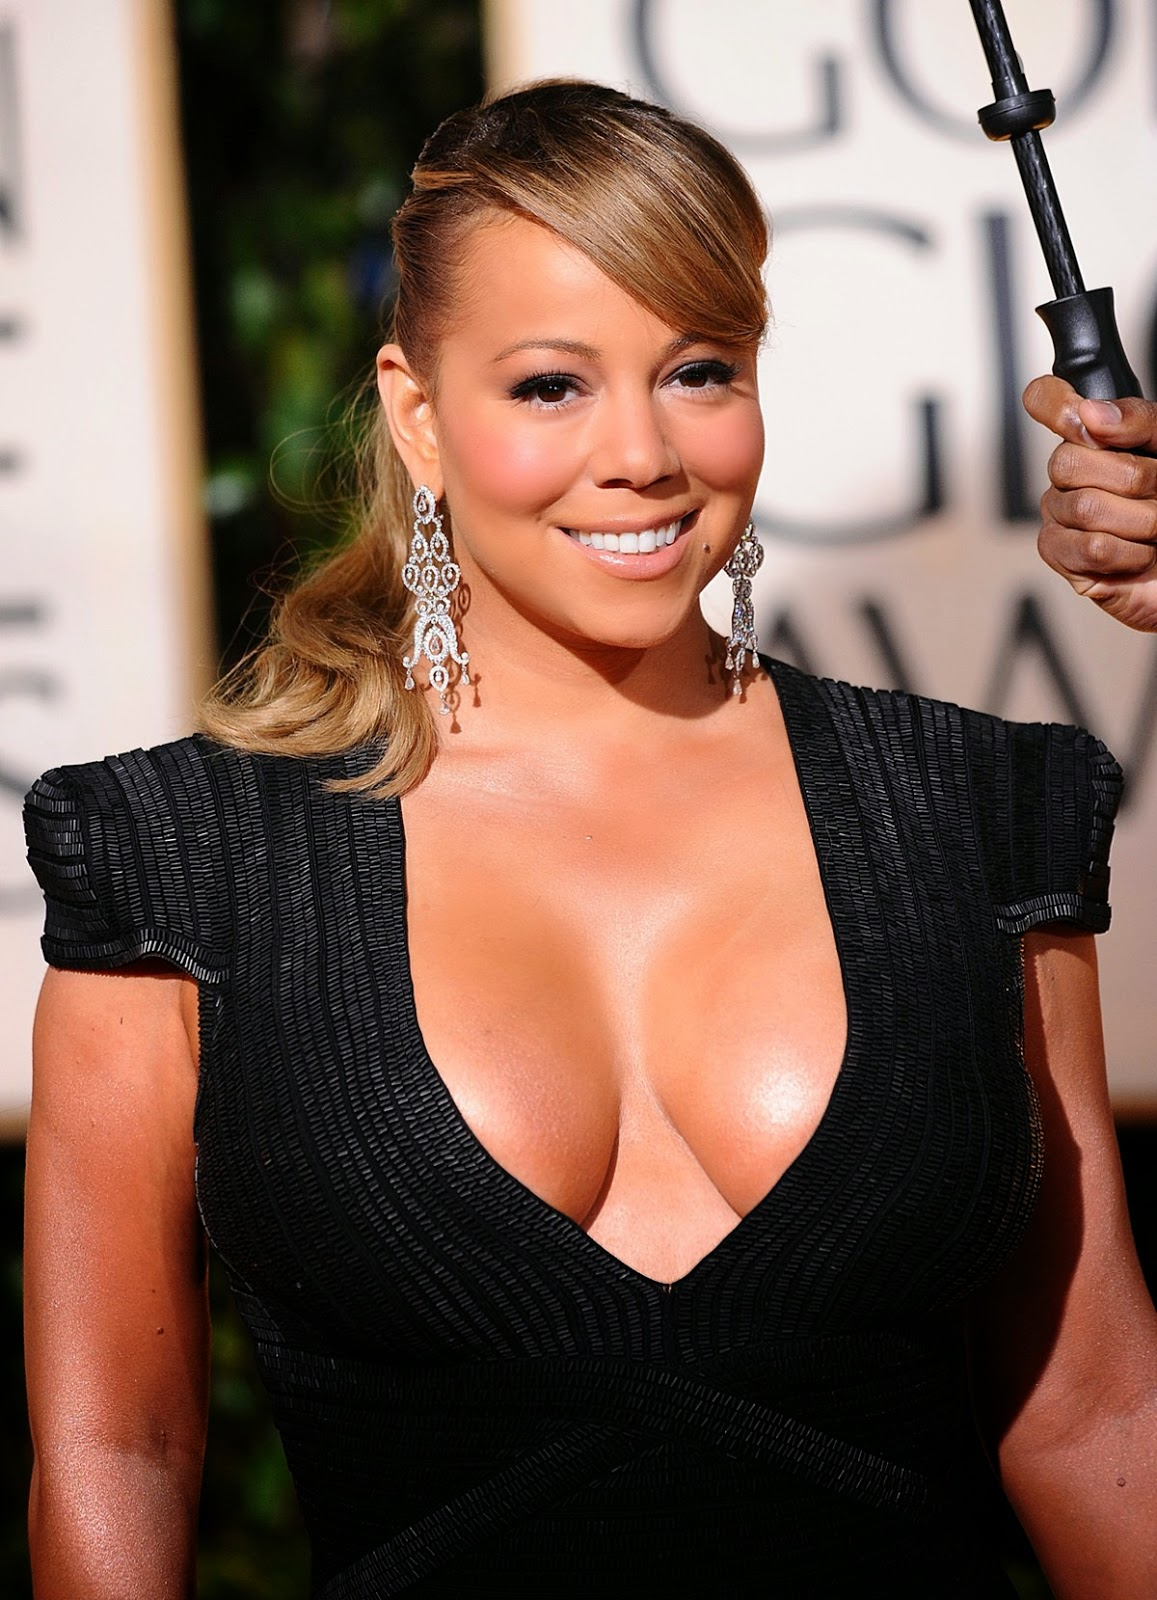 Mariah Carey's 14th album will be released Beyonce style